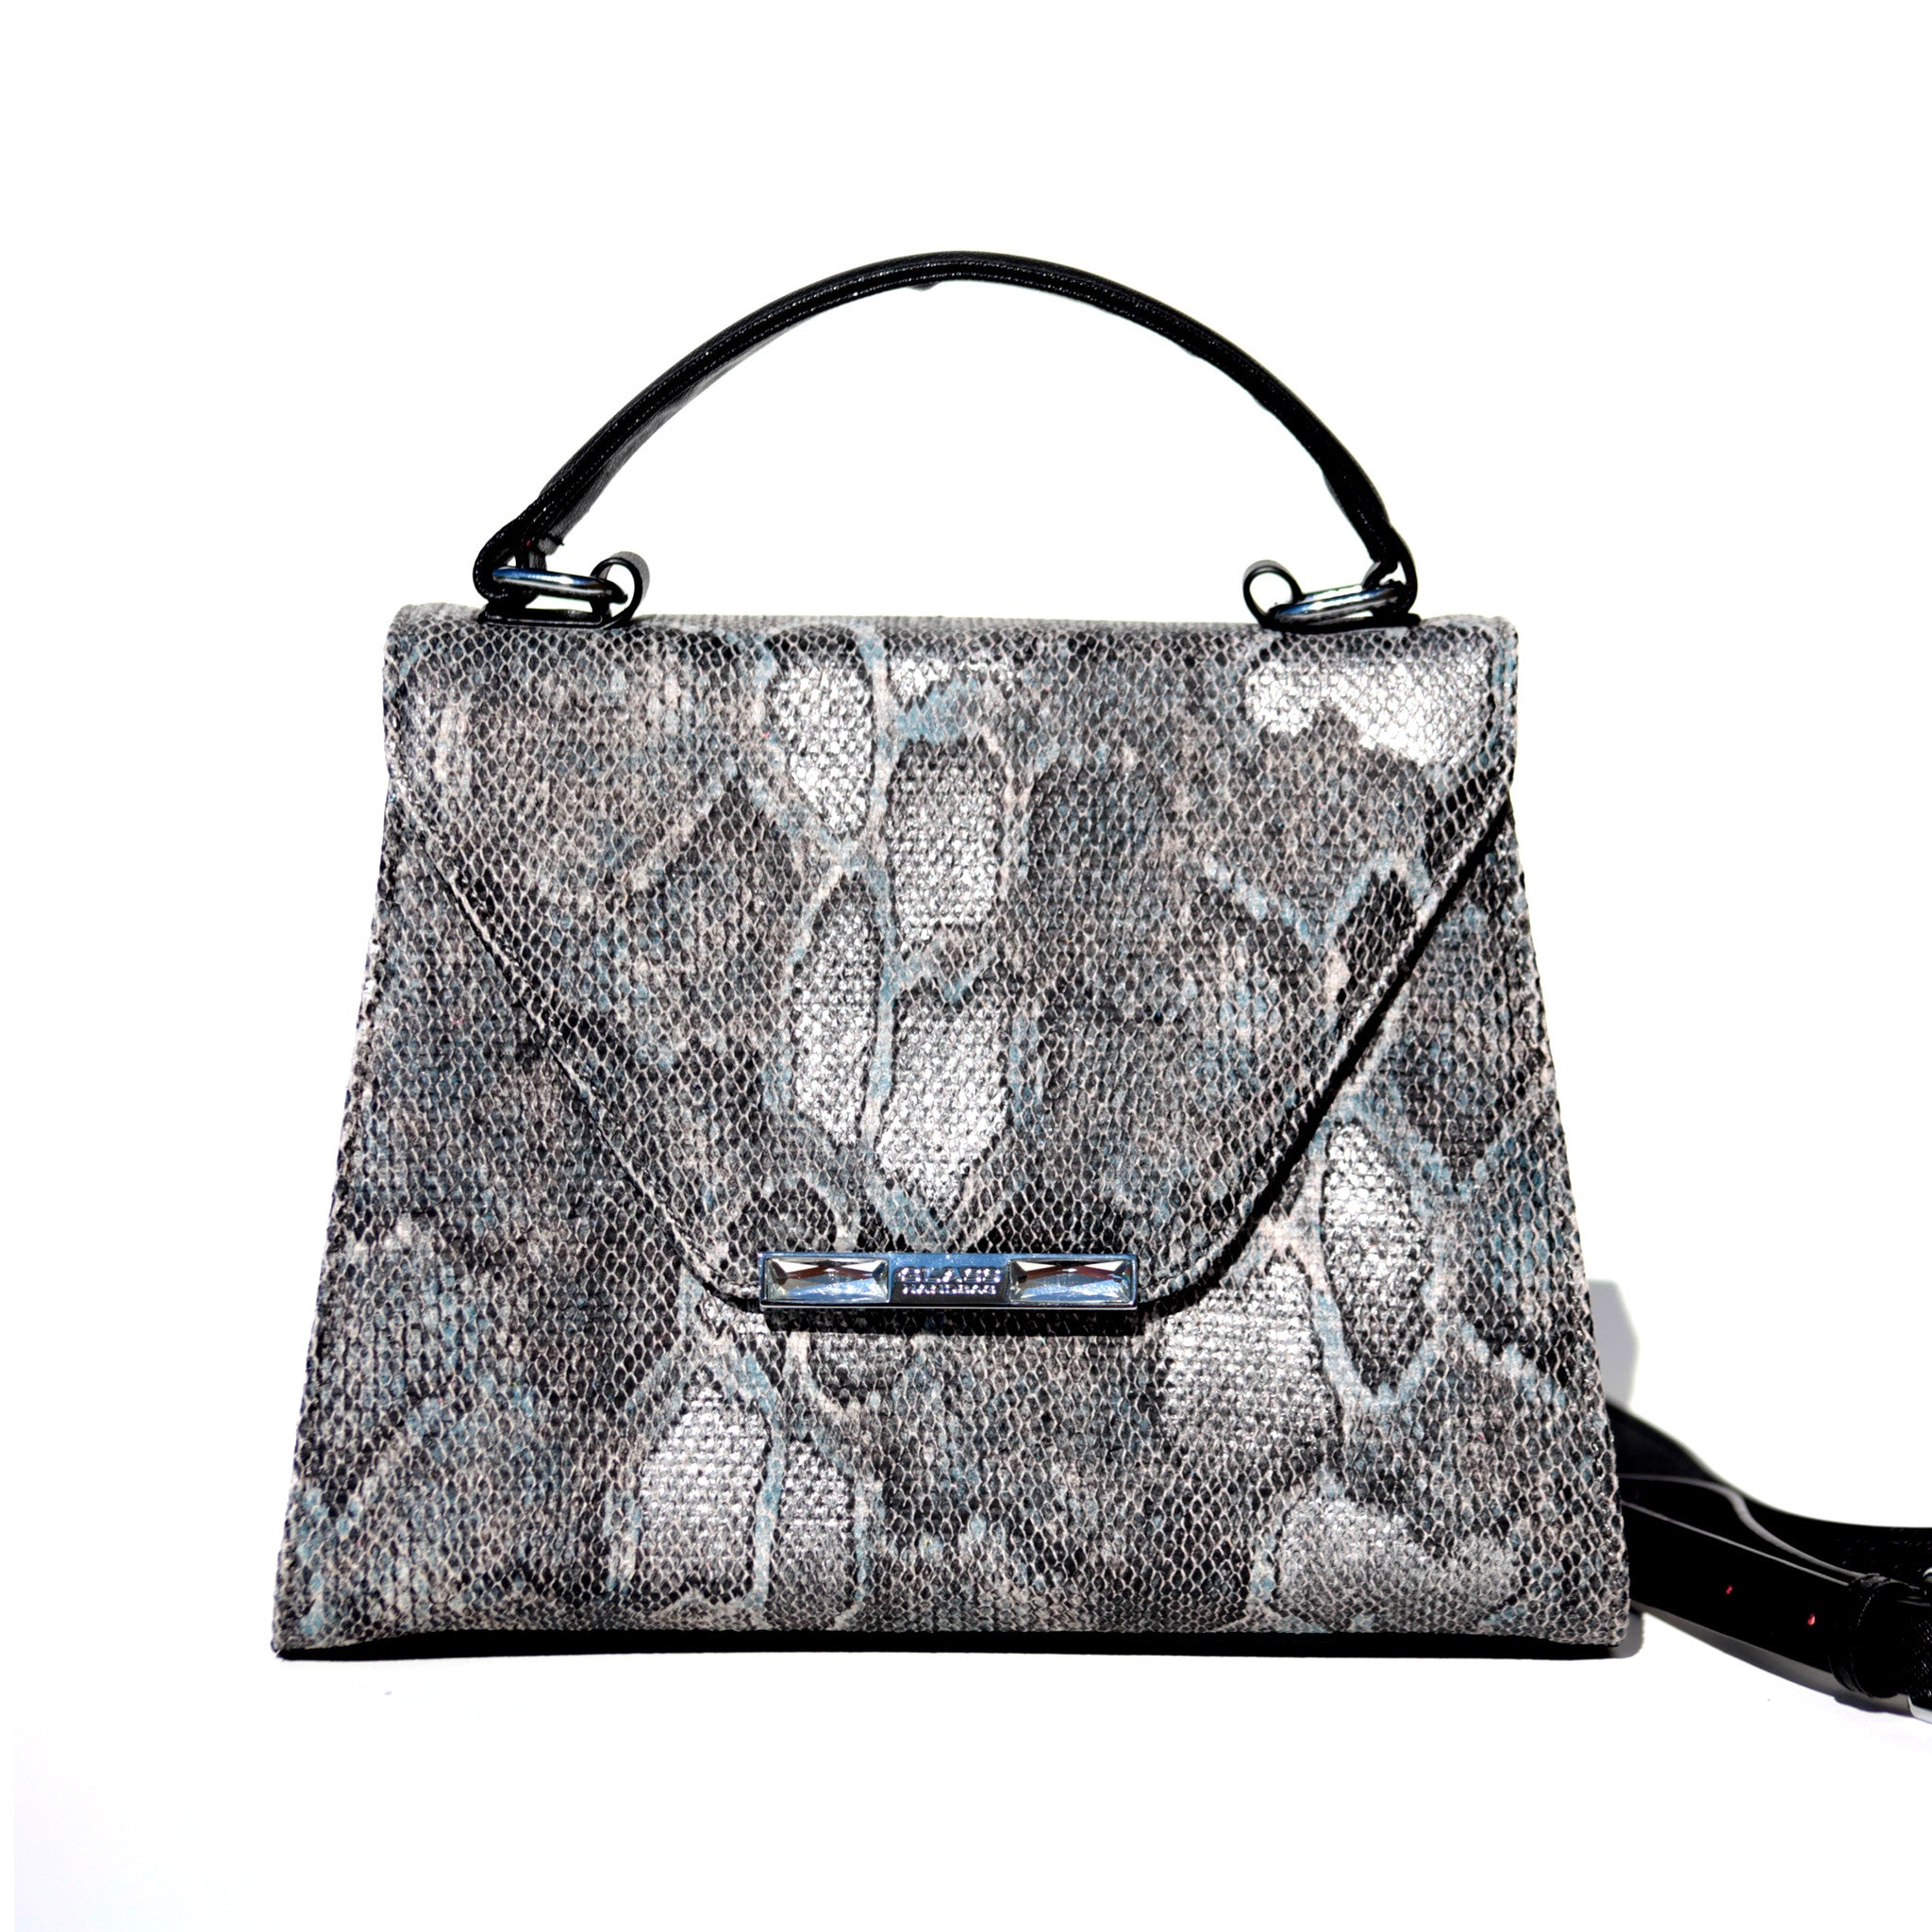 SILVER AND BLACK SNAKE PRINCESS SATCHEL